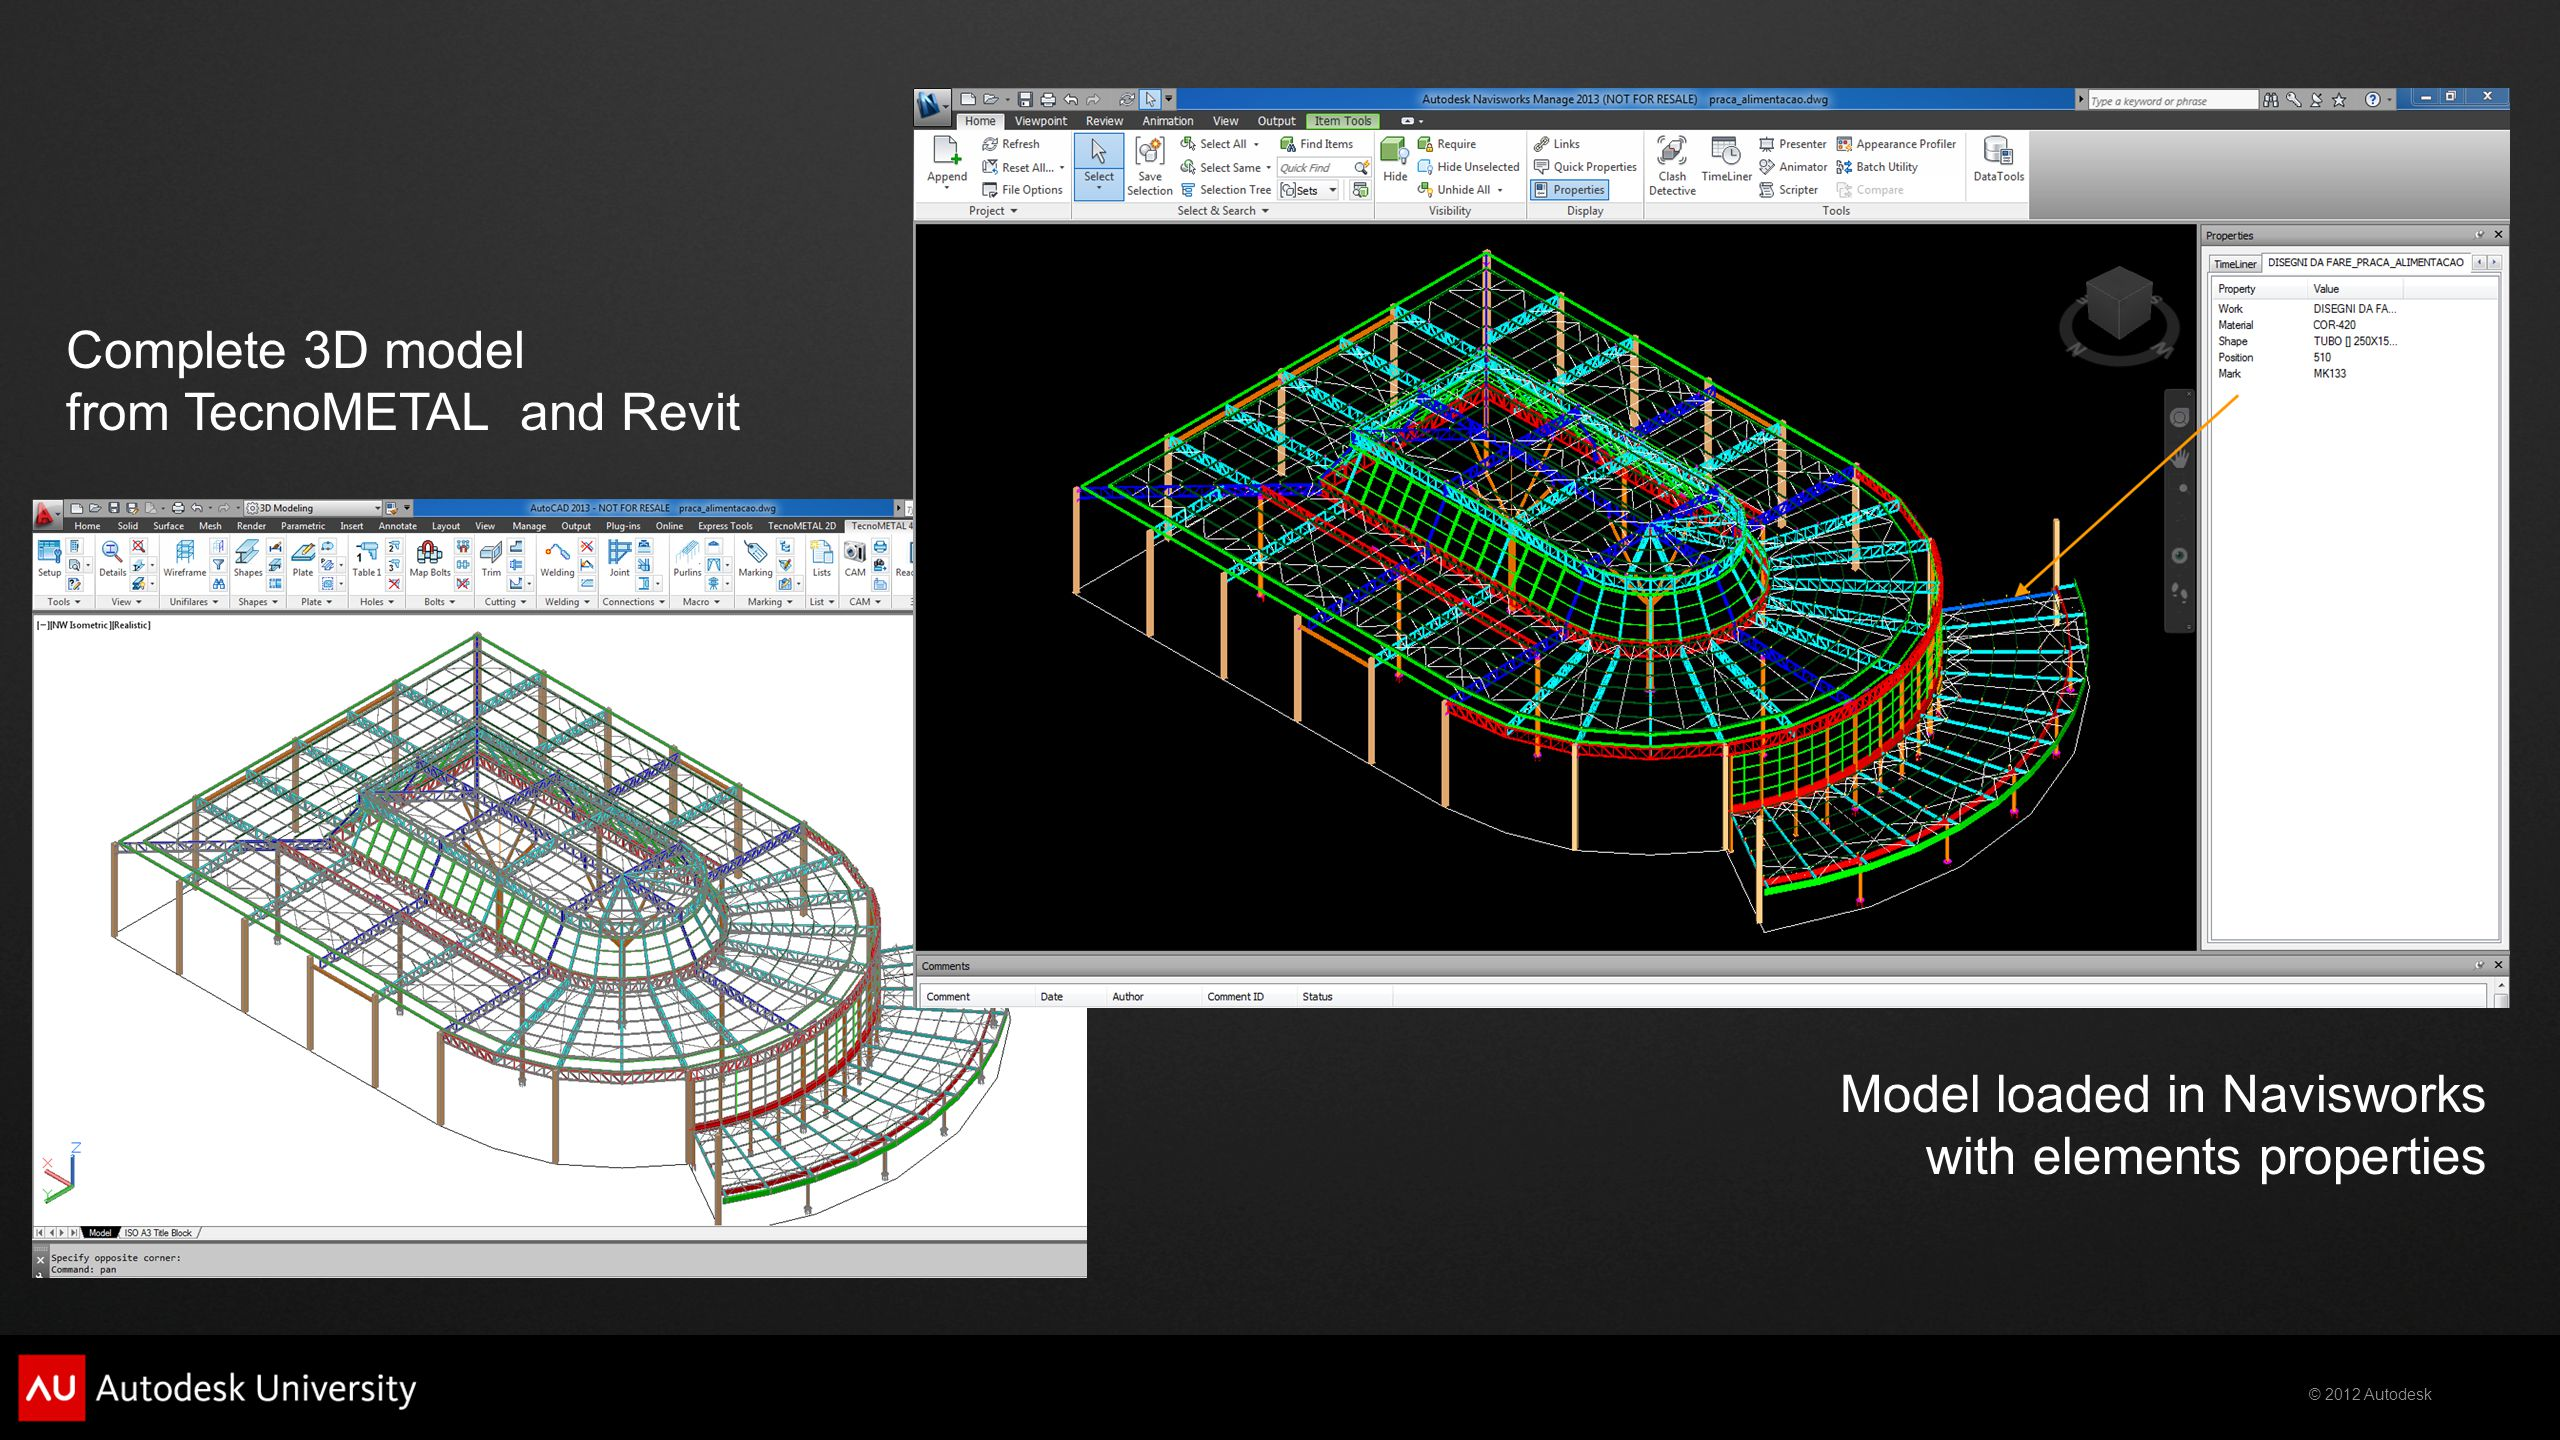 Complete 3D model from TecnoMETAL and Revit